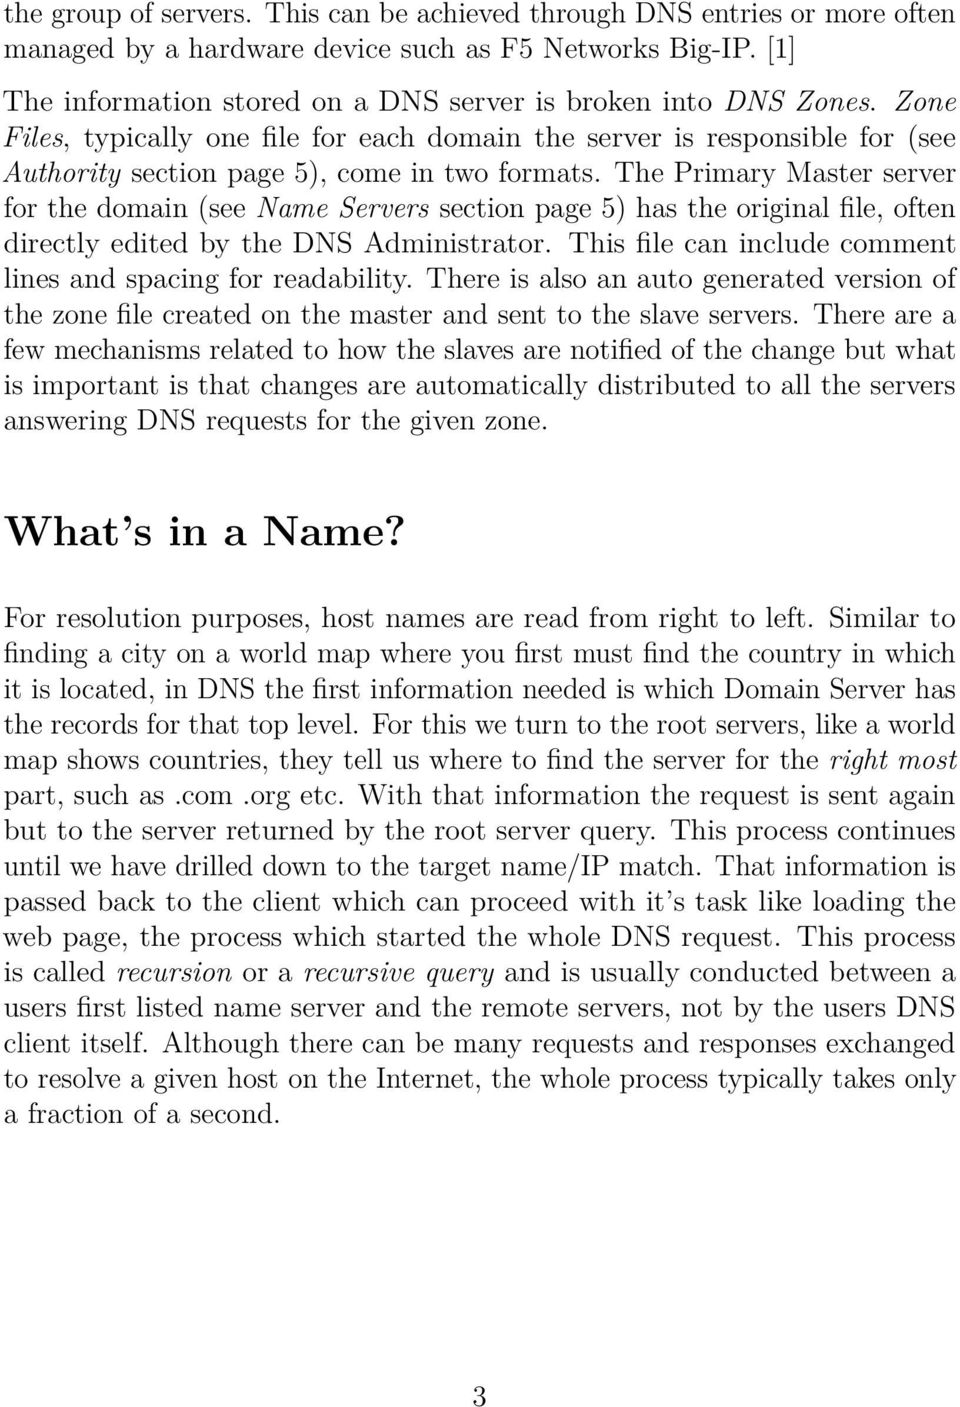 The Primary Master server for the domain (see Name Servers section page 5) has the original file, often directly edited by the DNS Administrator.